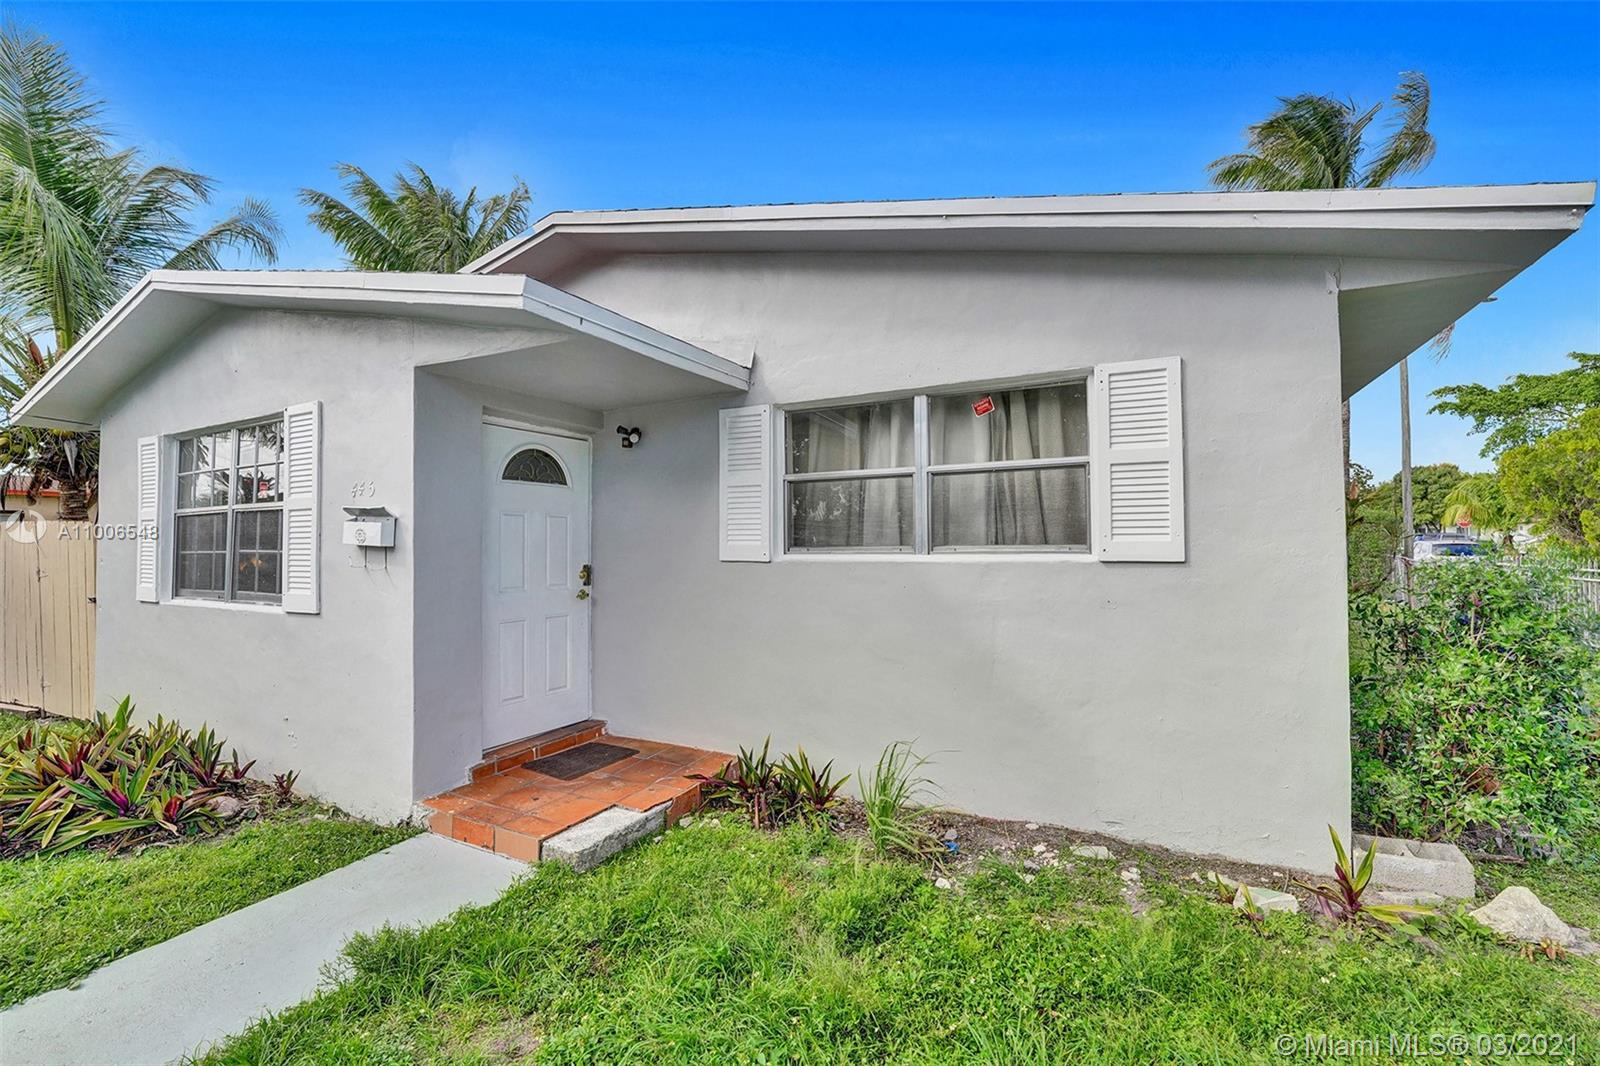 North Miami Beach - 445 NE 173rd St, North Miami Beach, FL 33162